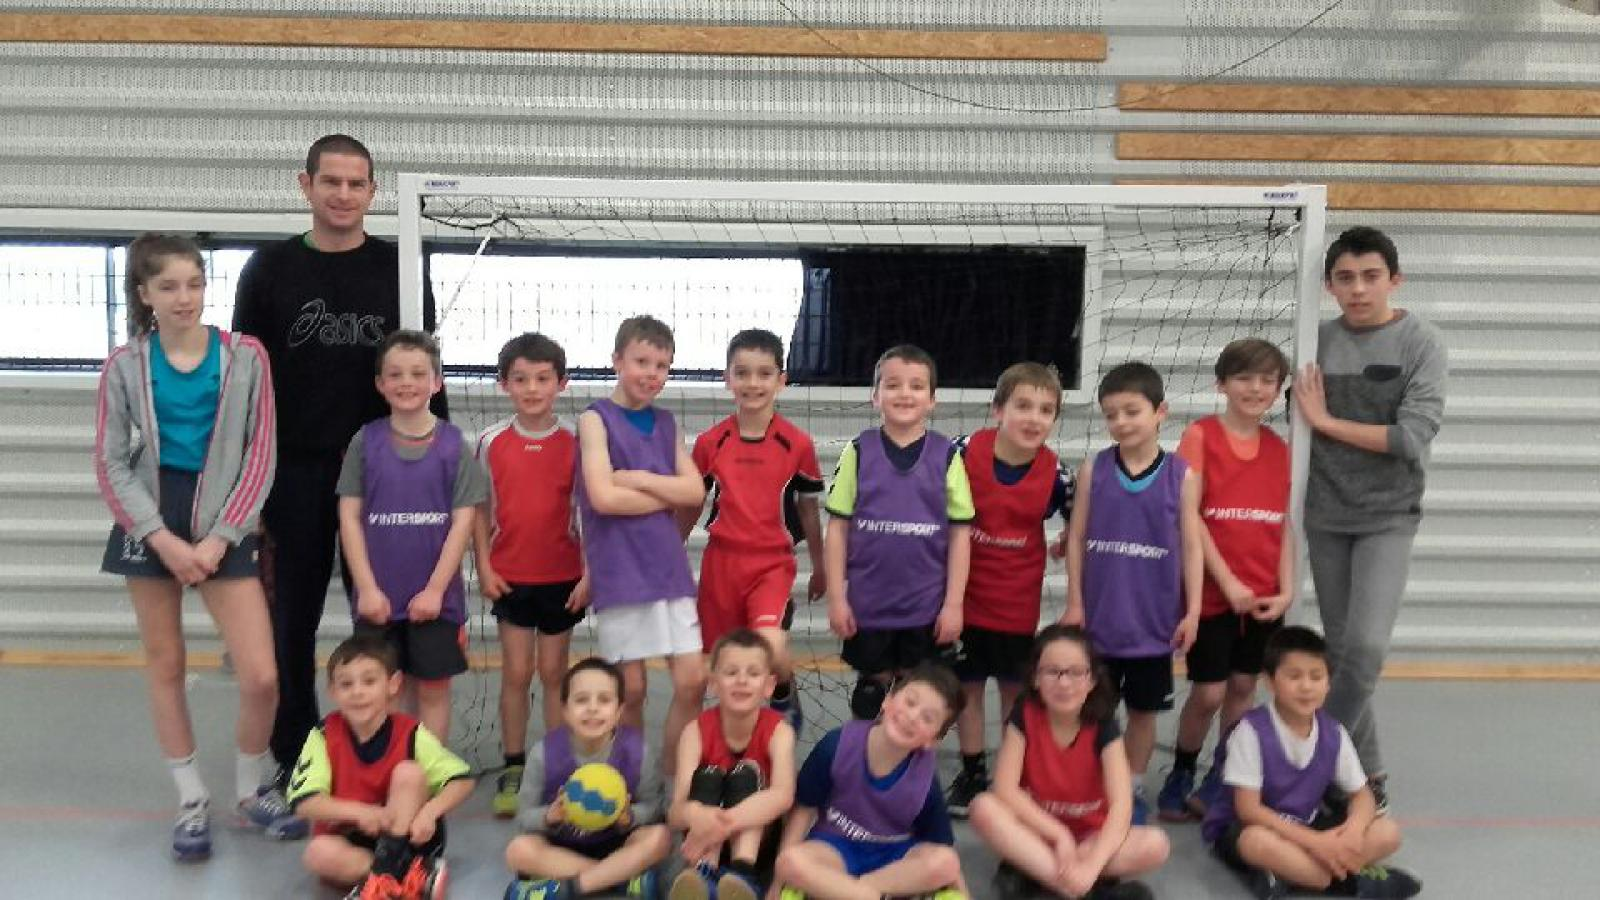 VALLET Ecole de Hand - Association Handball Vallet